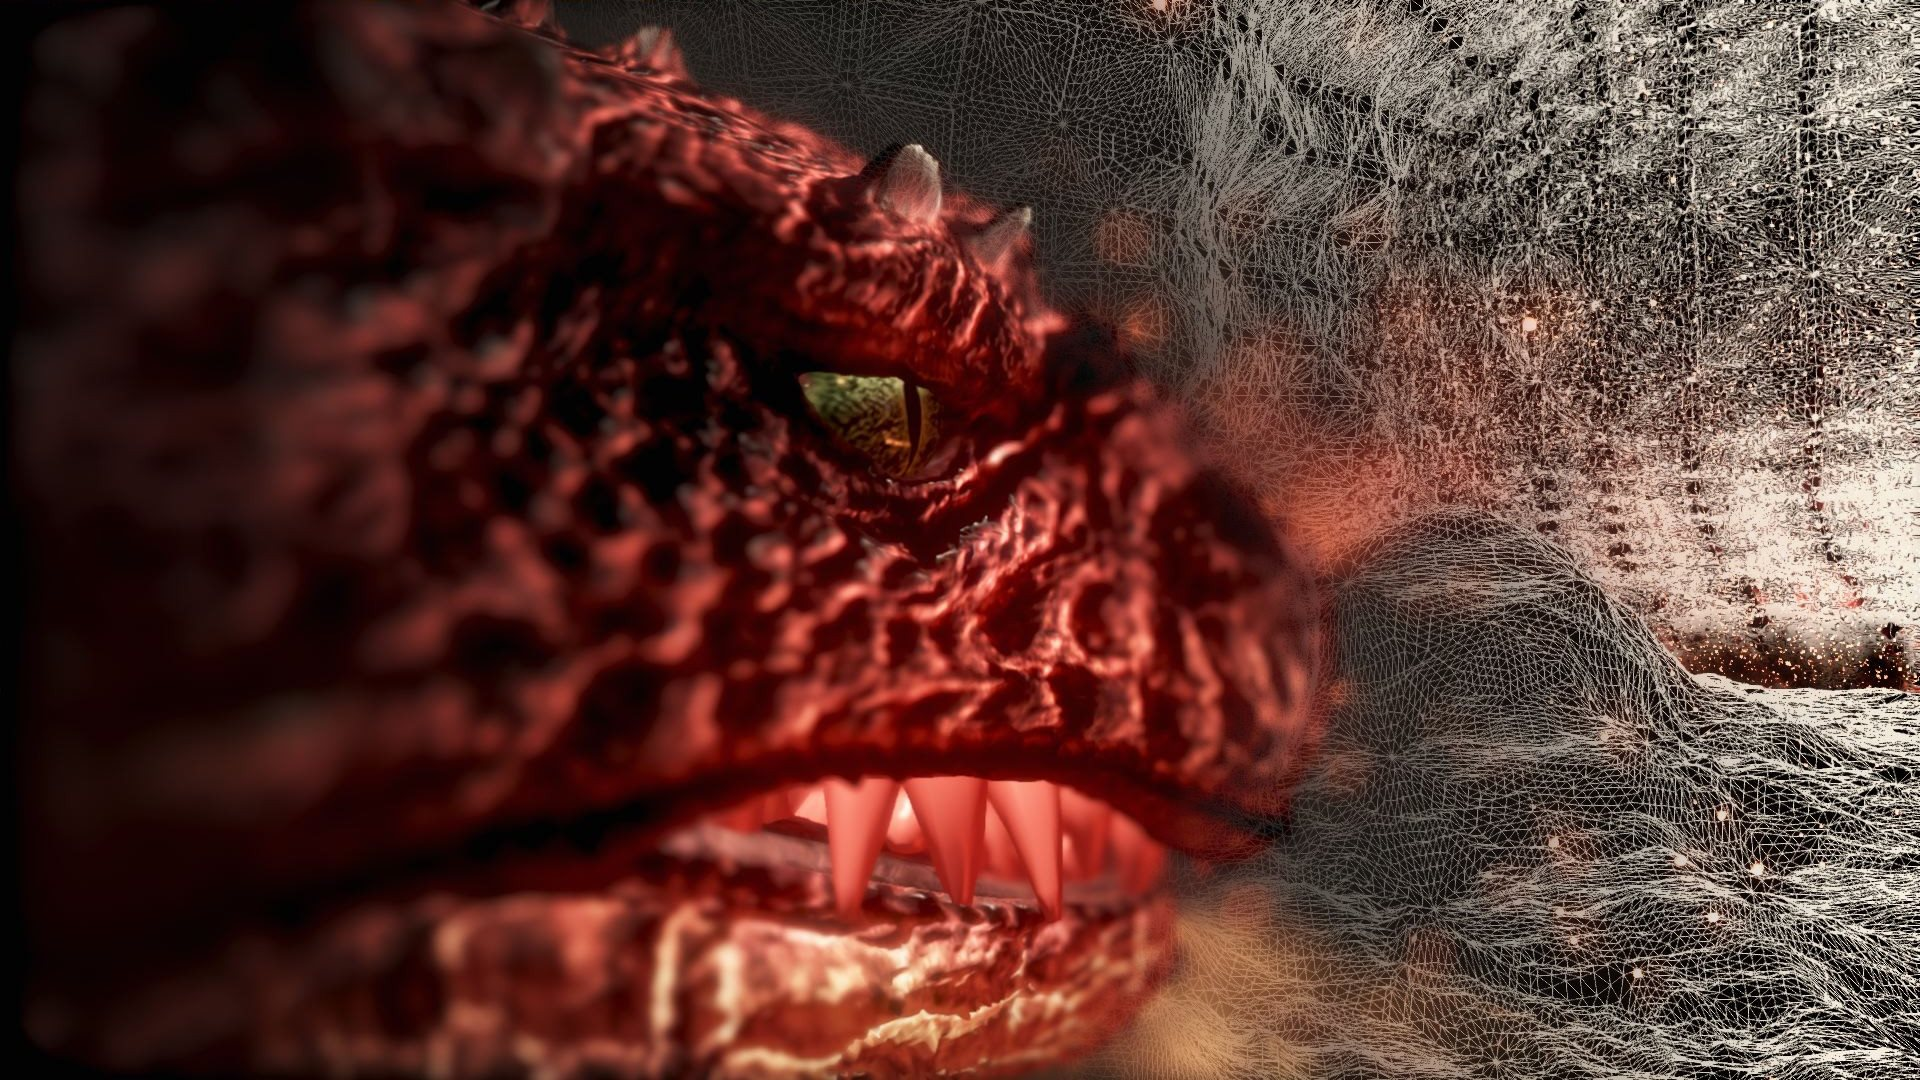 Optimized perfomance